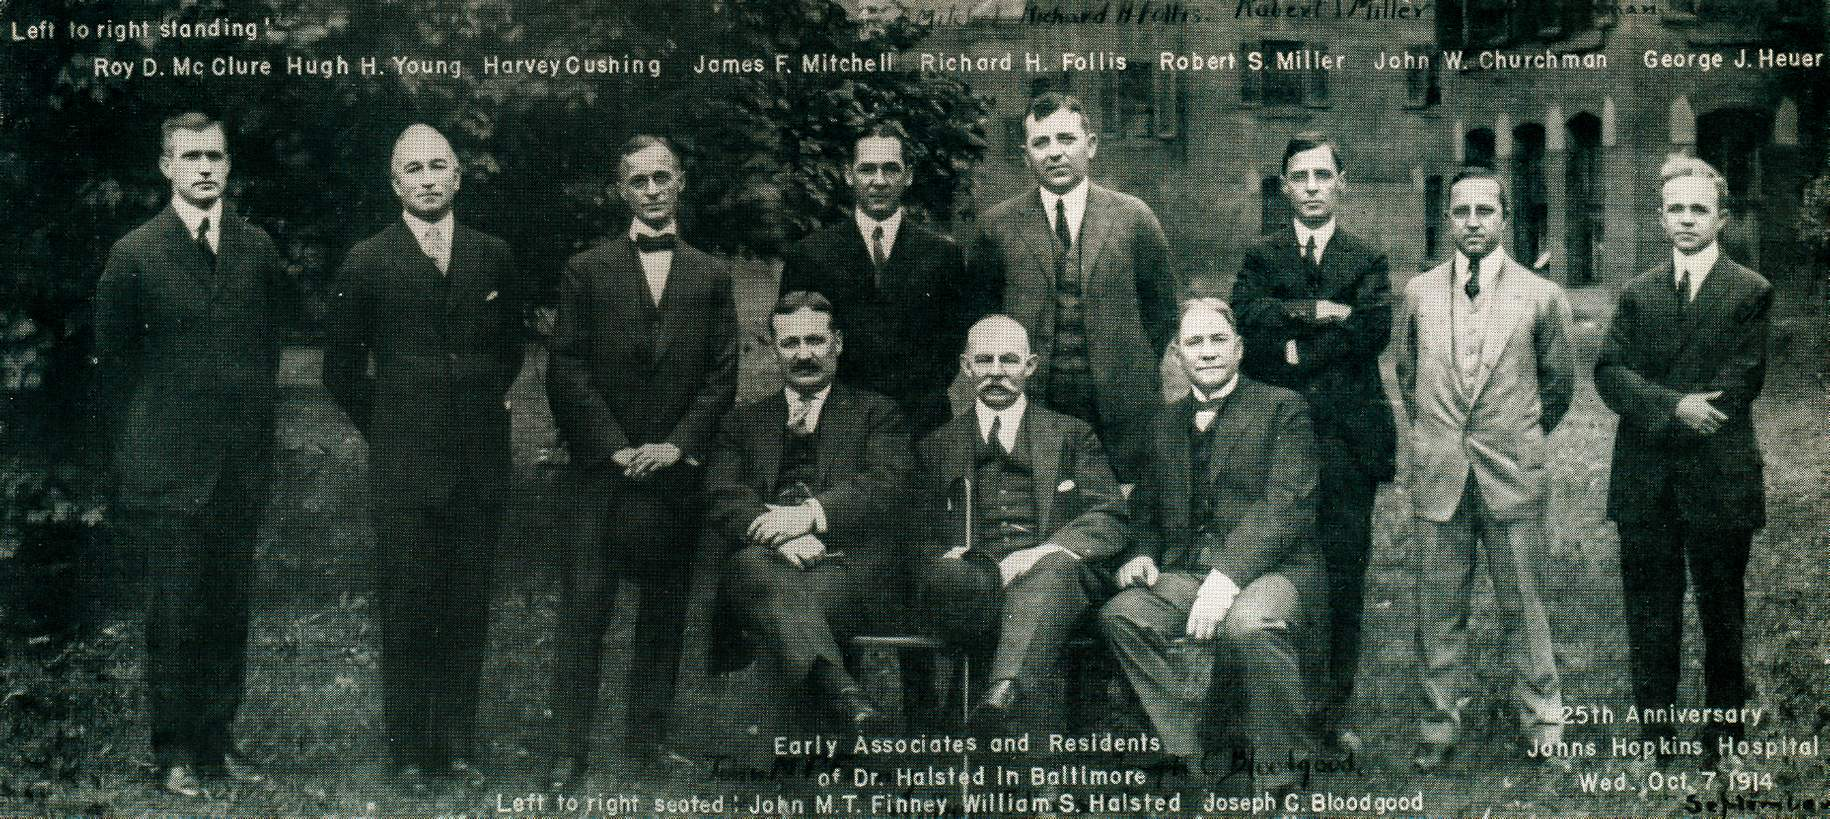 Figure 1: Rare photo of Halsted's associates and residents commemorating the 25th anniversary of Johns Hopkins Hospital on October 7, 1914. Halsted is seen in the middle of the first row (sitting) and Cushing is seen third from the left in the second row (standing). William Halsted is considered the father of American surgery who established the first model of surgical training in the United States. Many of his residents and associates (pictured here) went on to establish the different surgical subspecialties.